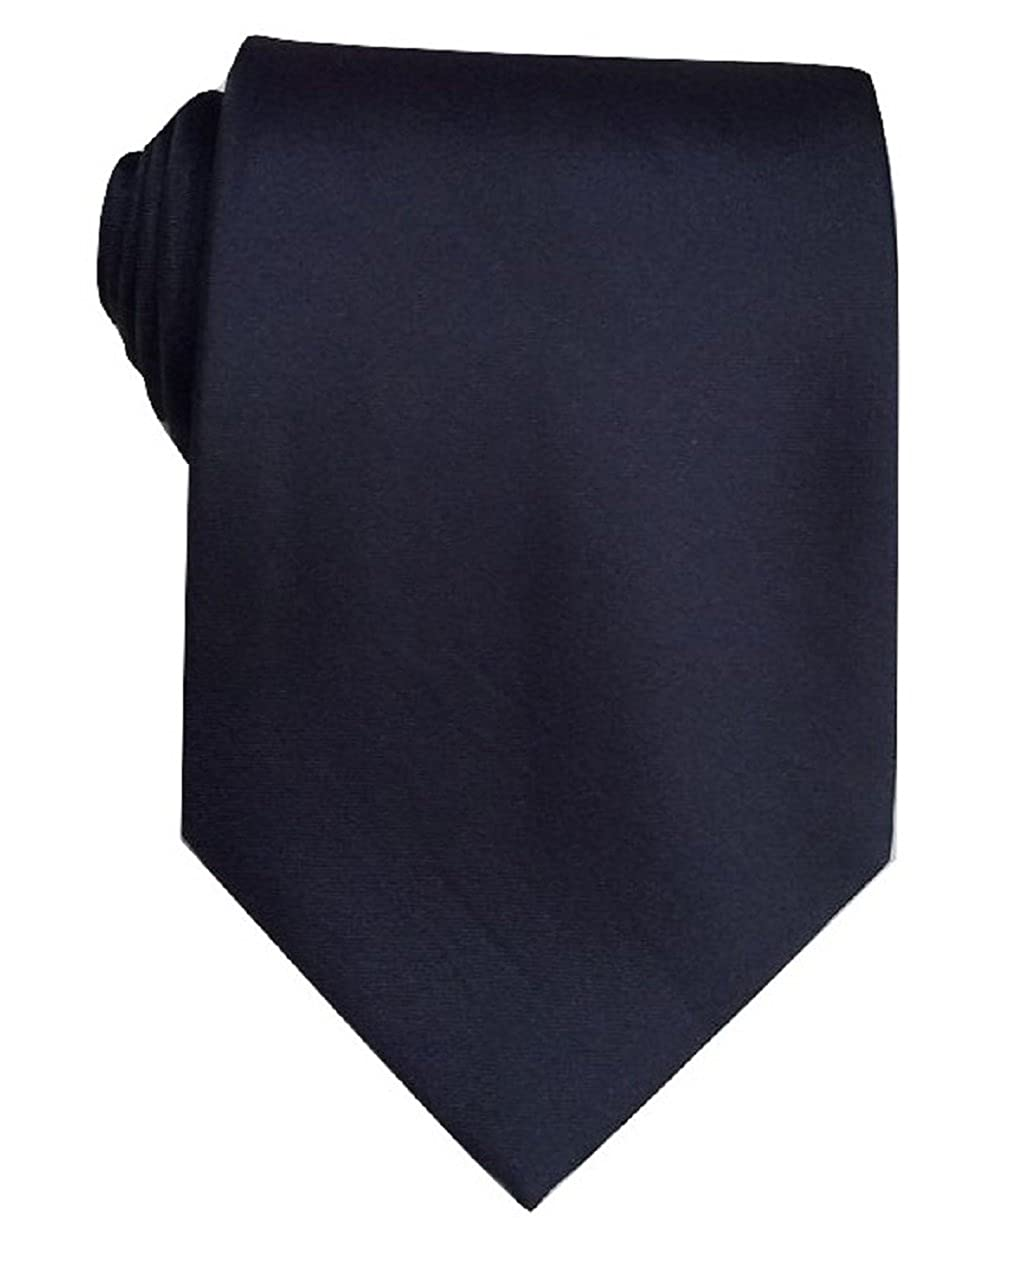 L/&L Striped School Kid Children Boys wedding event prom party plain necktie tie UK